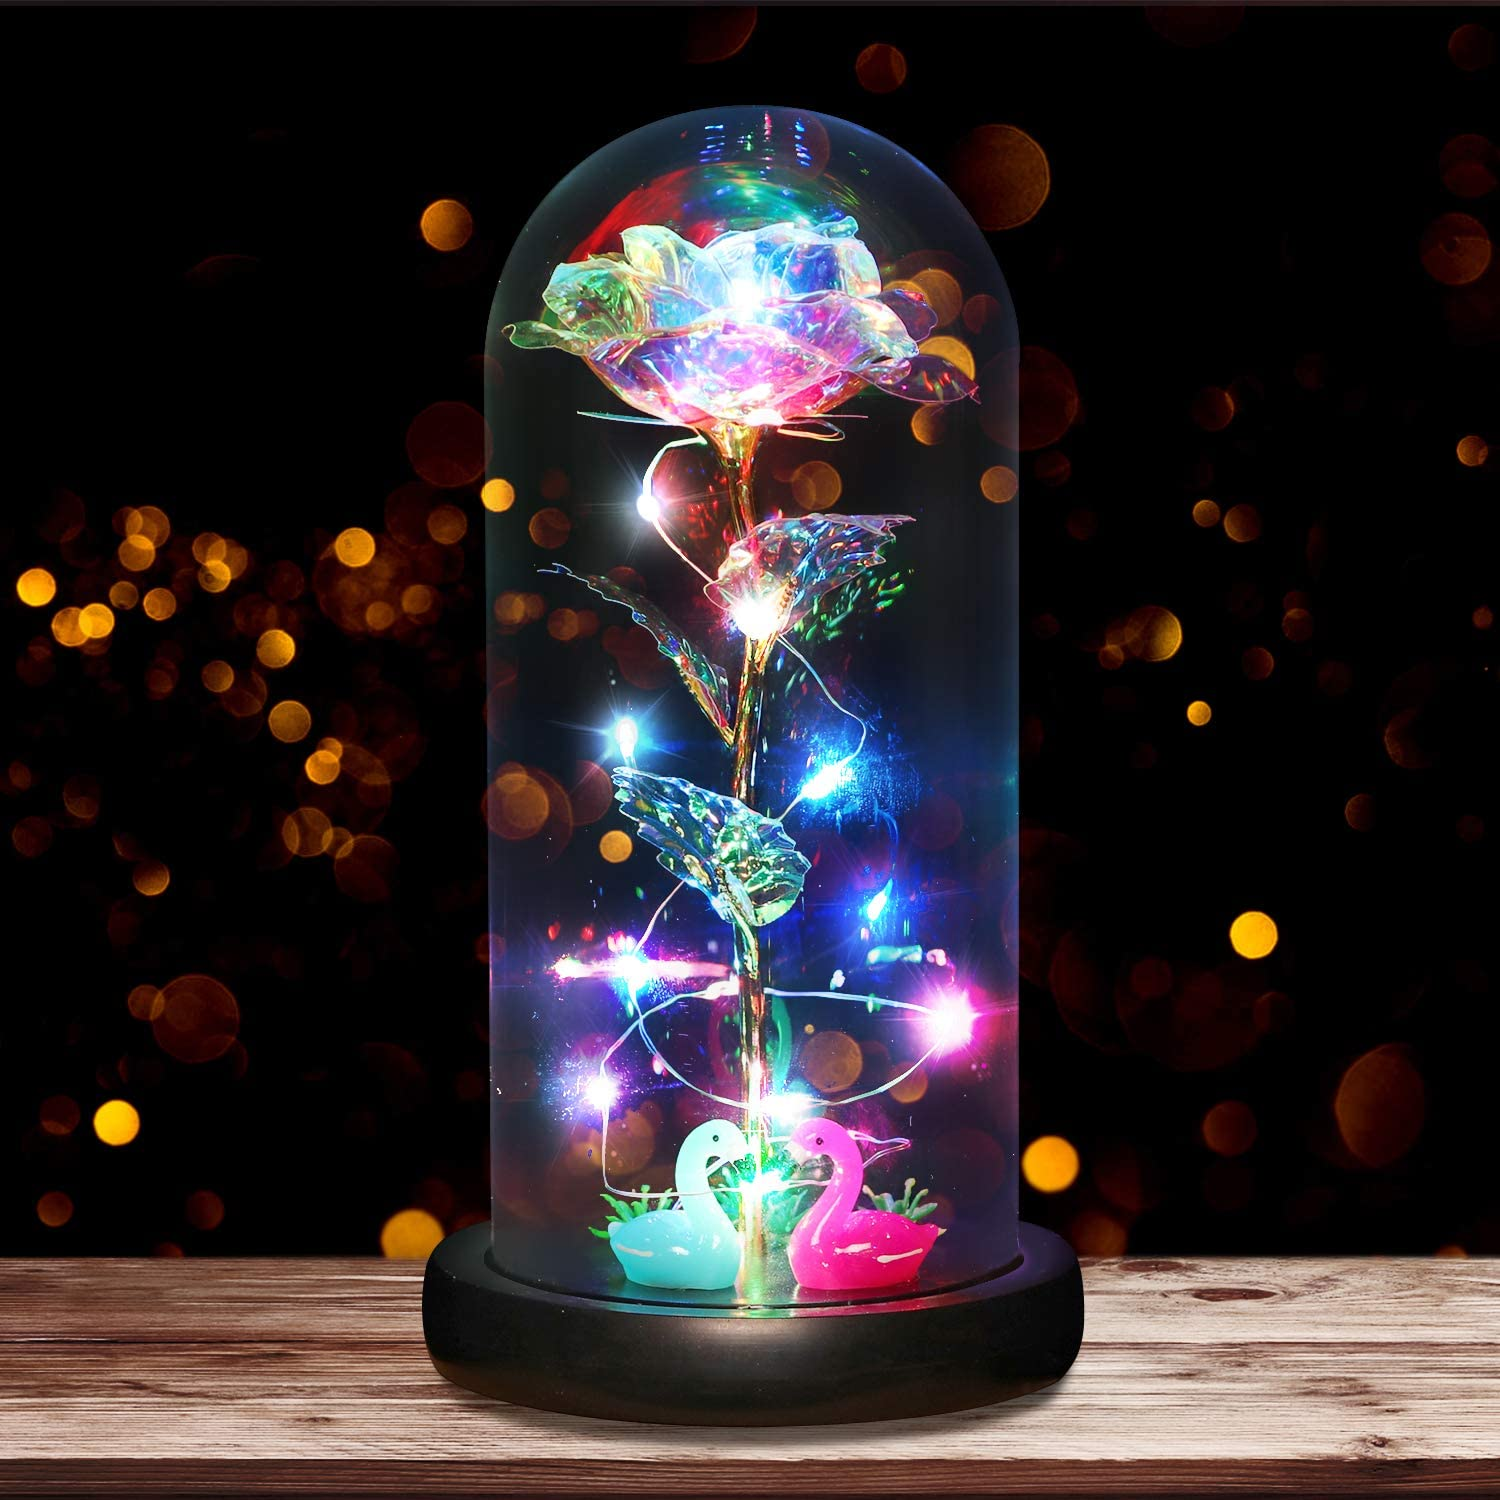 B2LOVER Galaxy Rose Beauty and The Beast Rose Flower Decoration with Flashlight in Glass Dome Gift Artificial Flower for Mom Birthday Anniversary Wedding